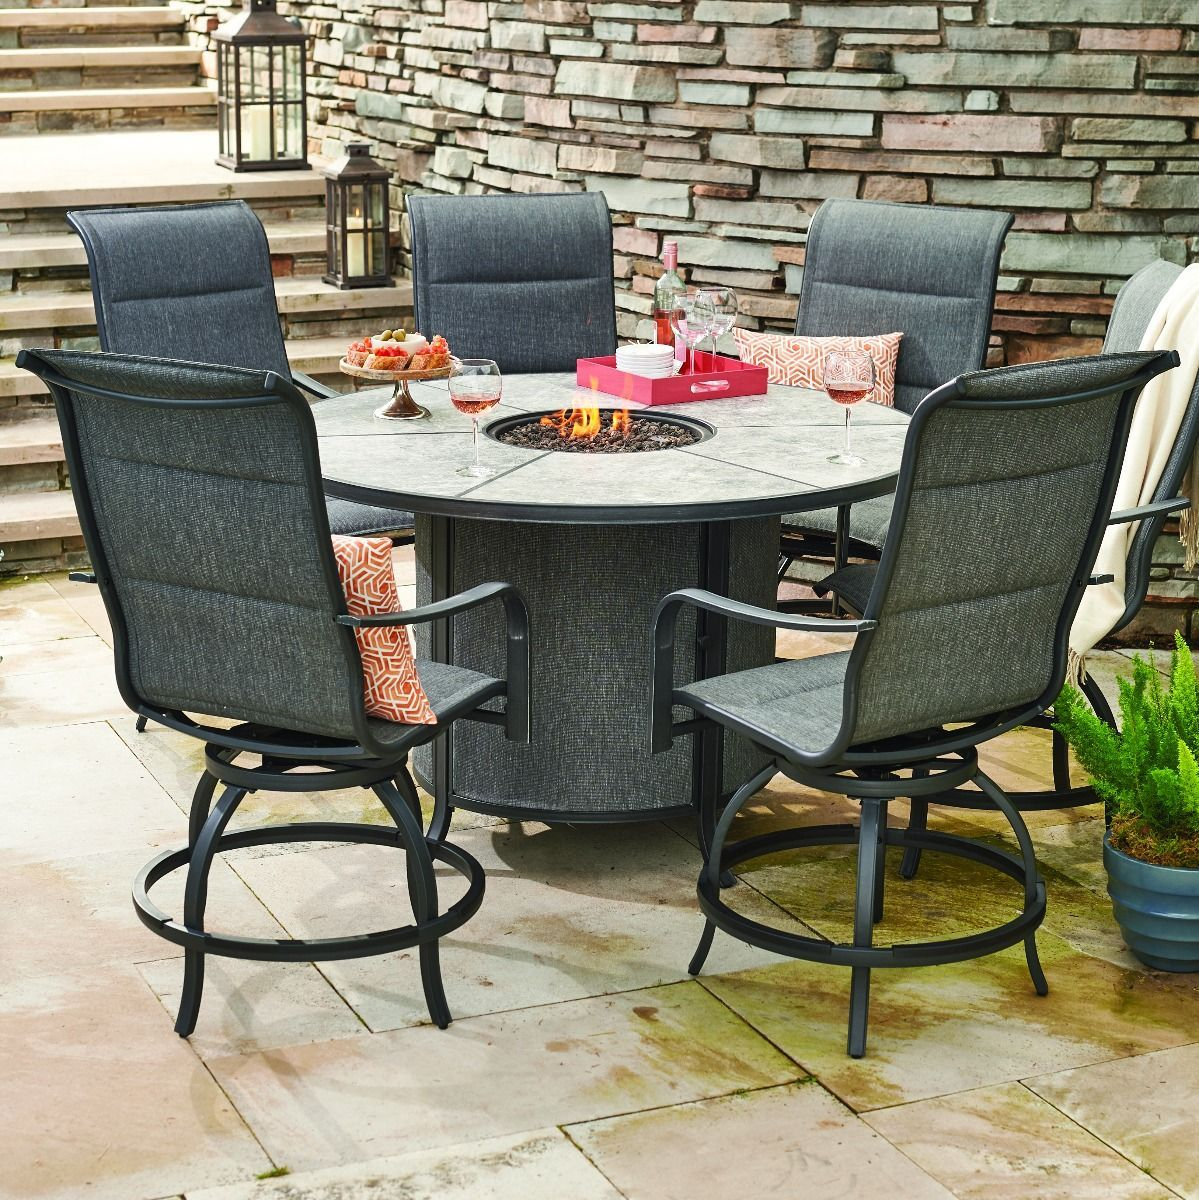 Avellino Fire Pit Counter Height Chair Patio Dining Set Rustic